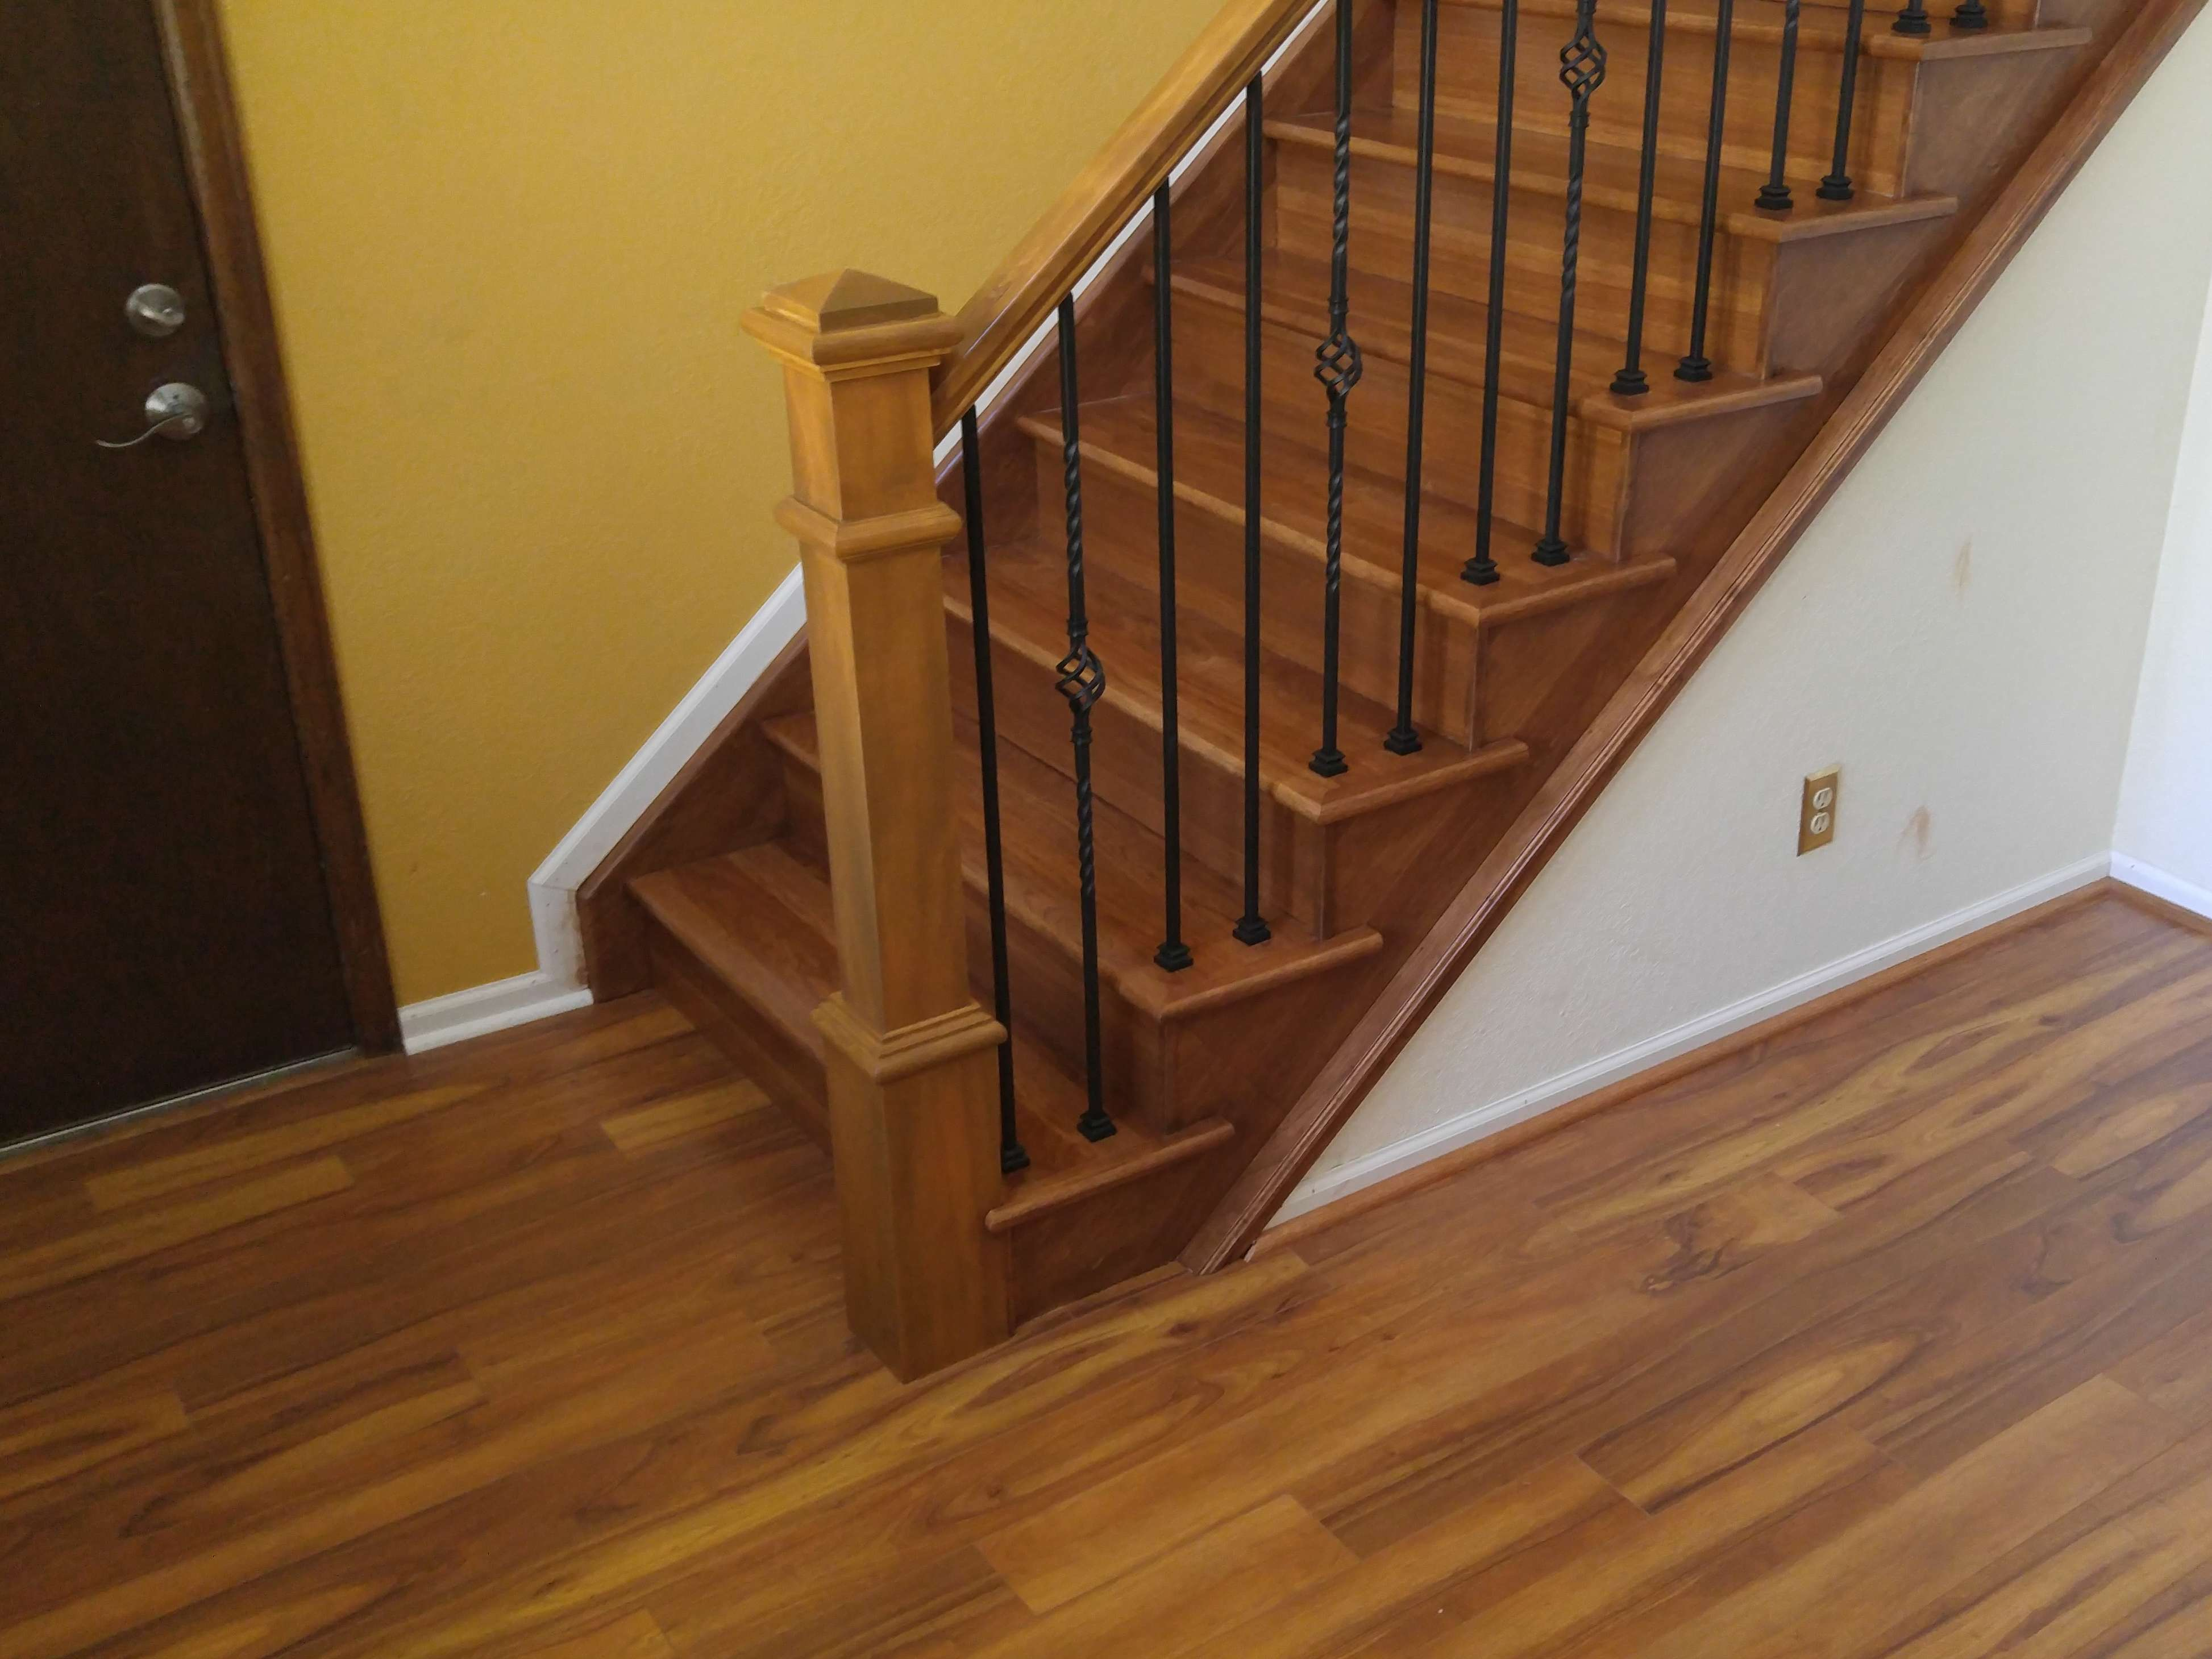 Running Out of Room in Your Home? Contact Precision Builders & Remodelers